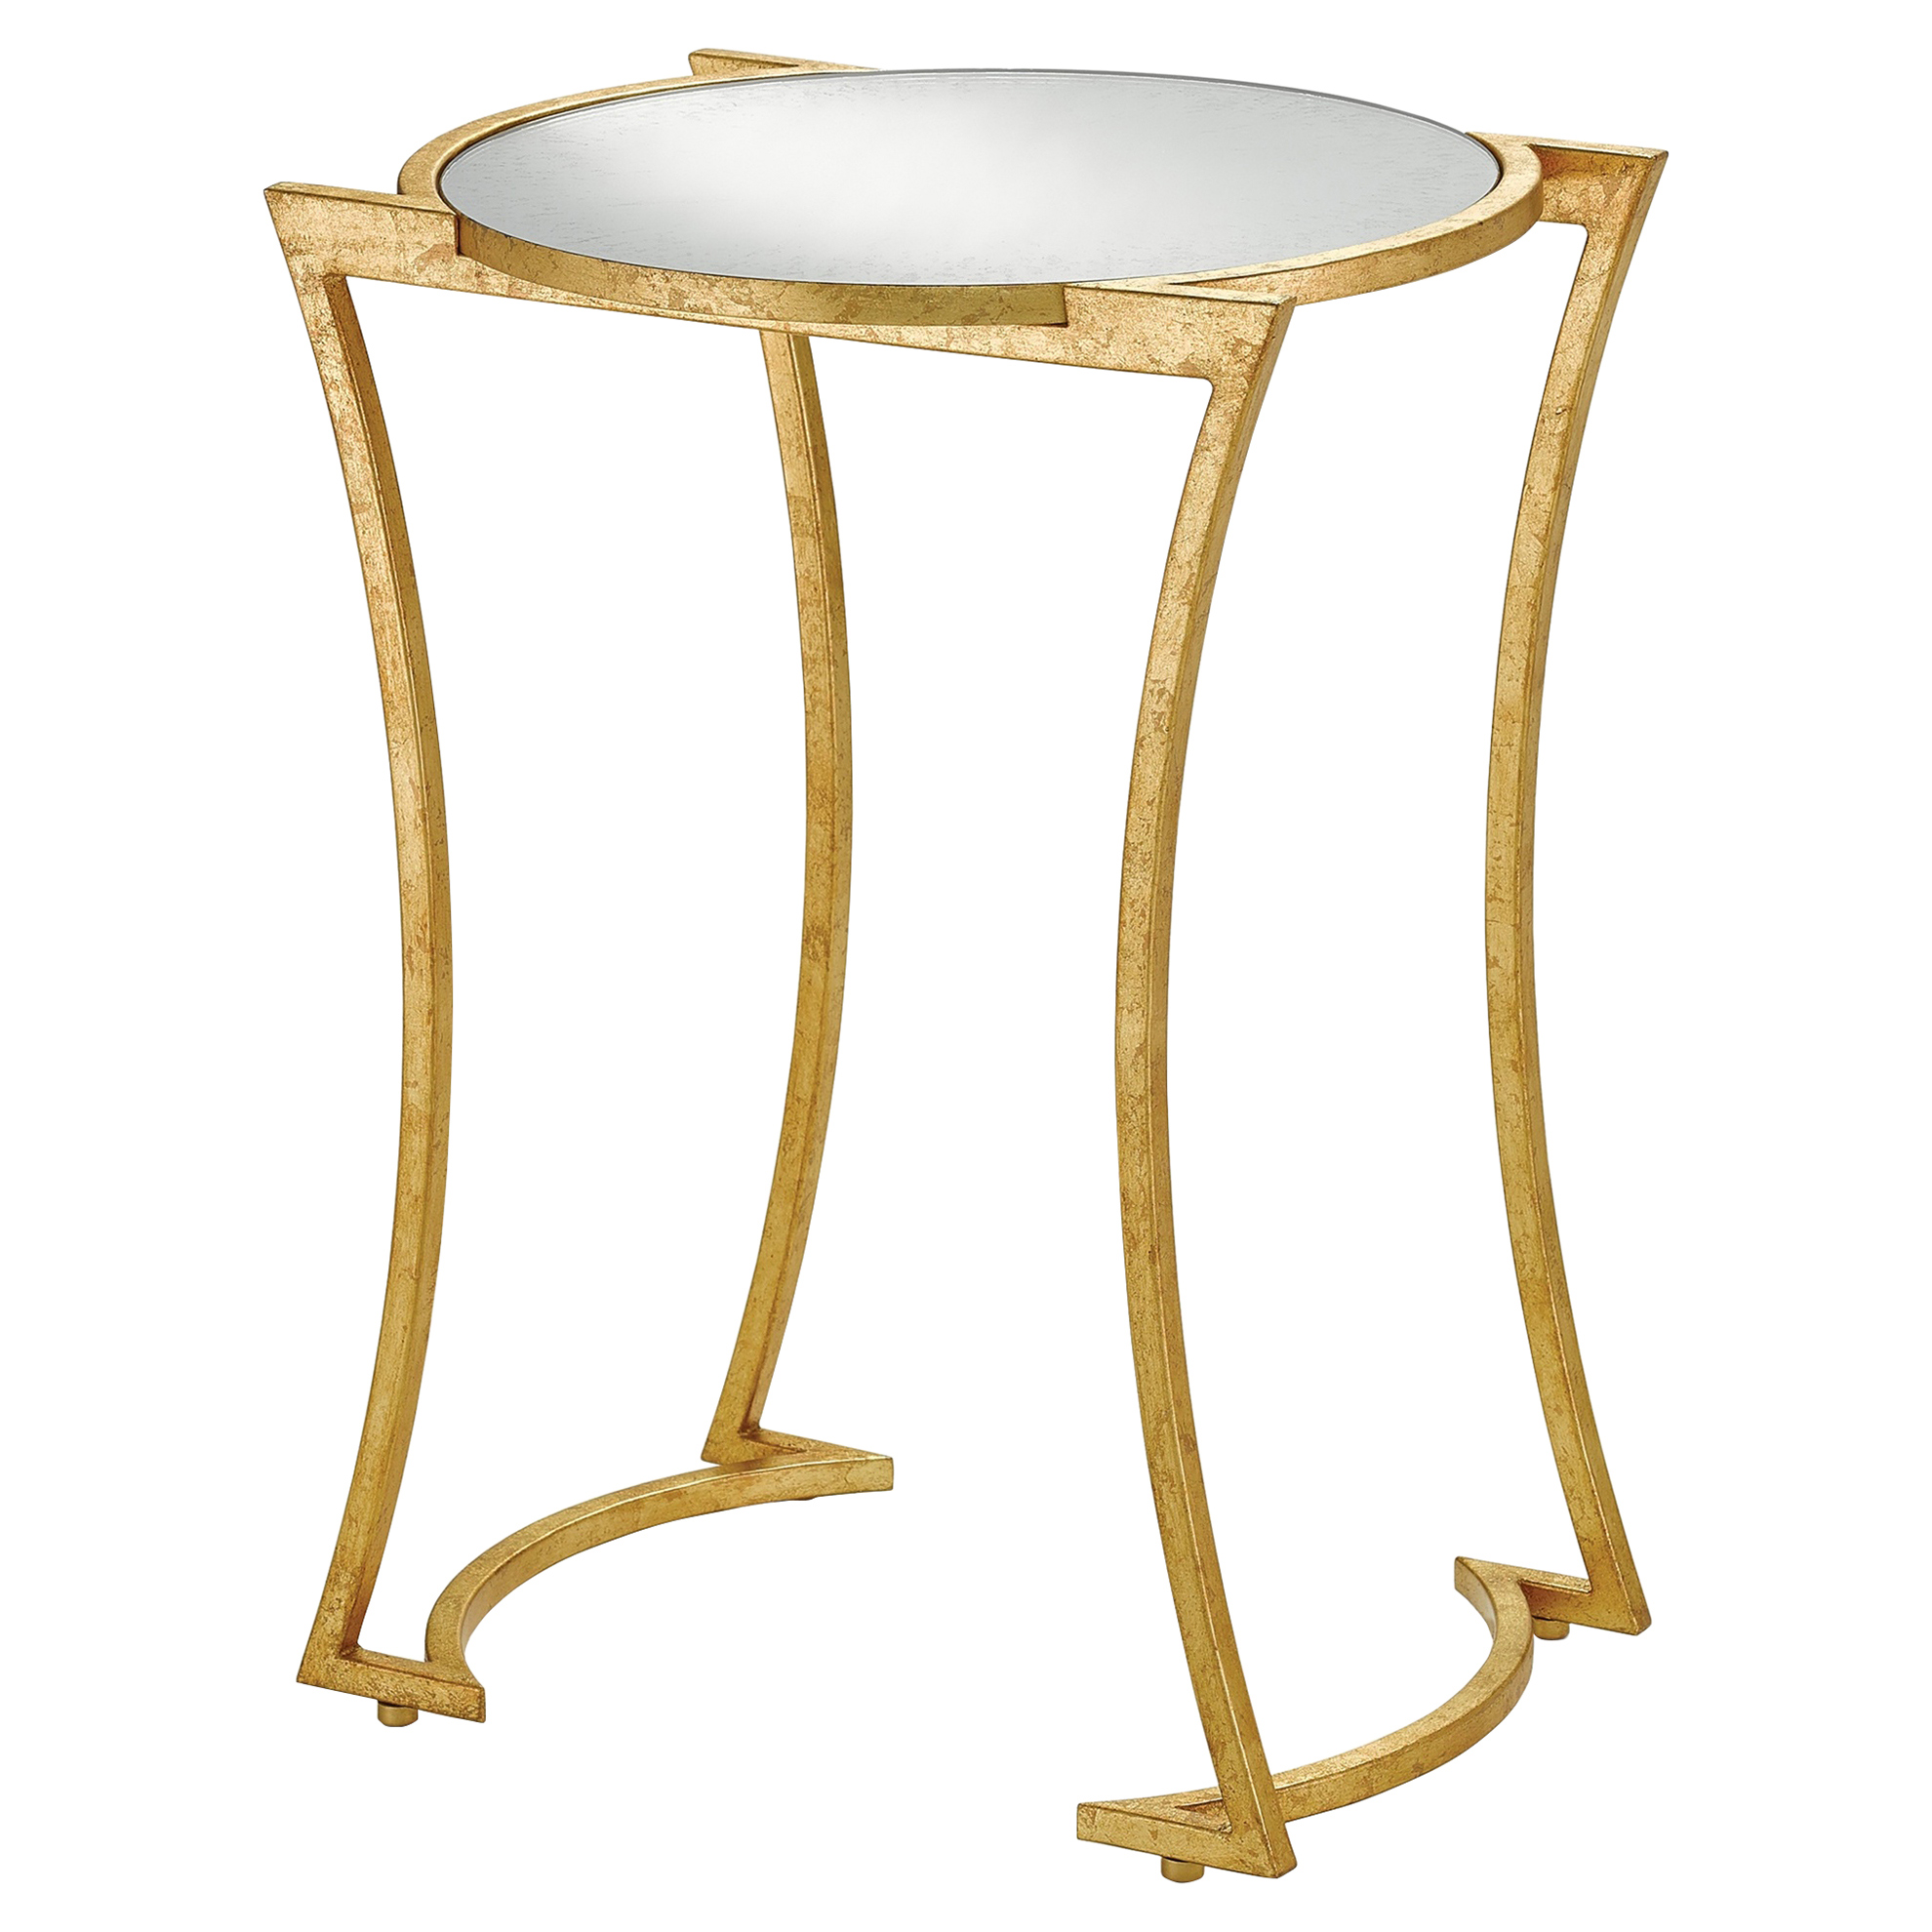 Bette Regency Curved Gold Leaf Mirrored End Table